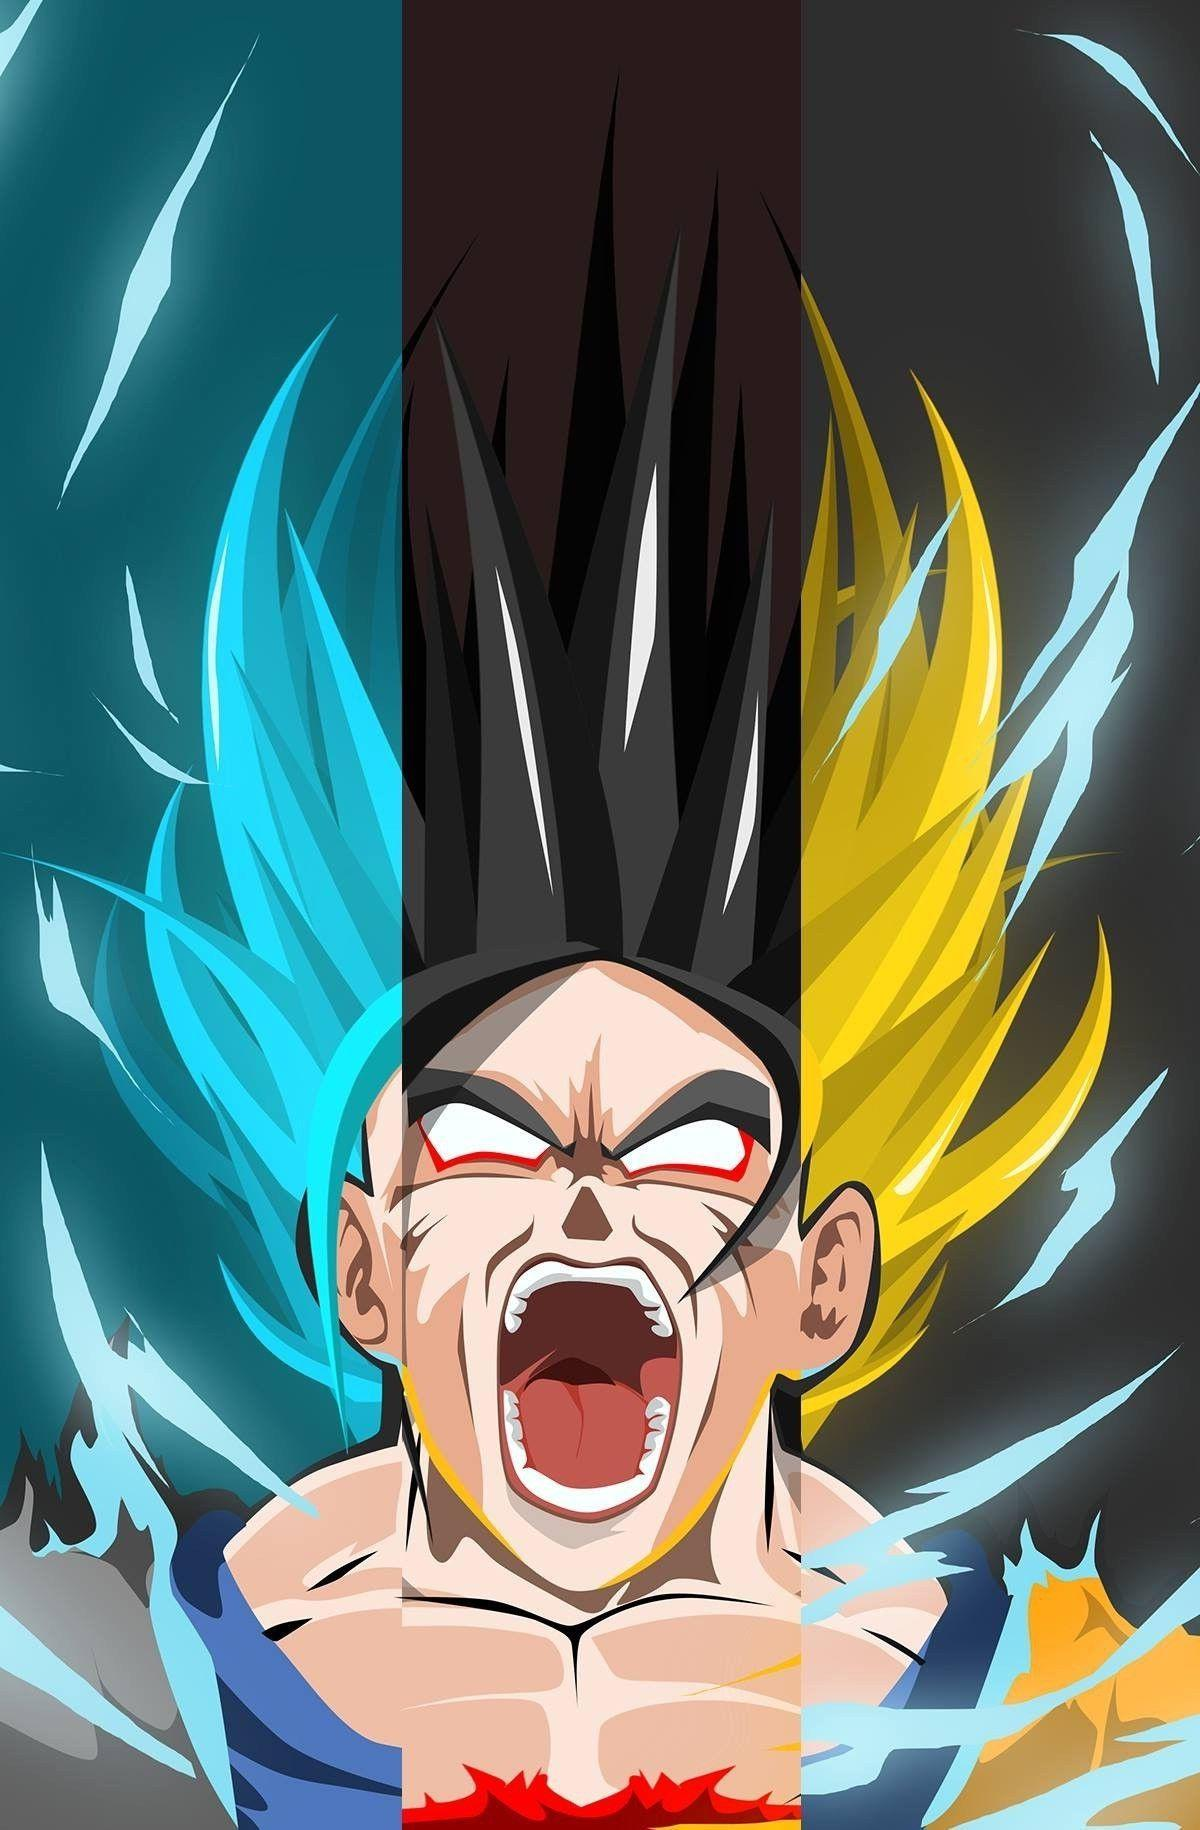 Dragon Ball Super Hd Wallpaper For Android Kadadaorg